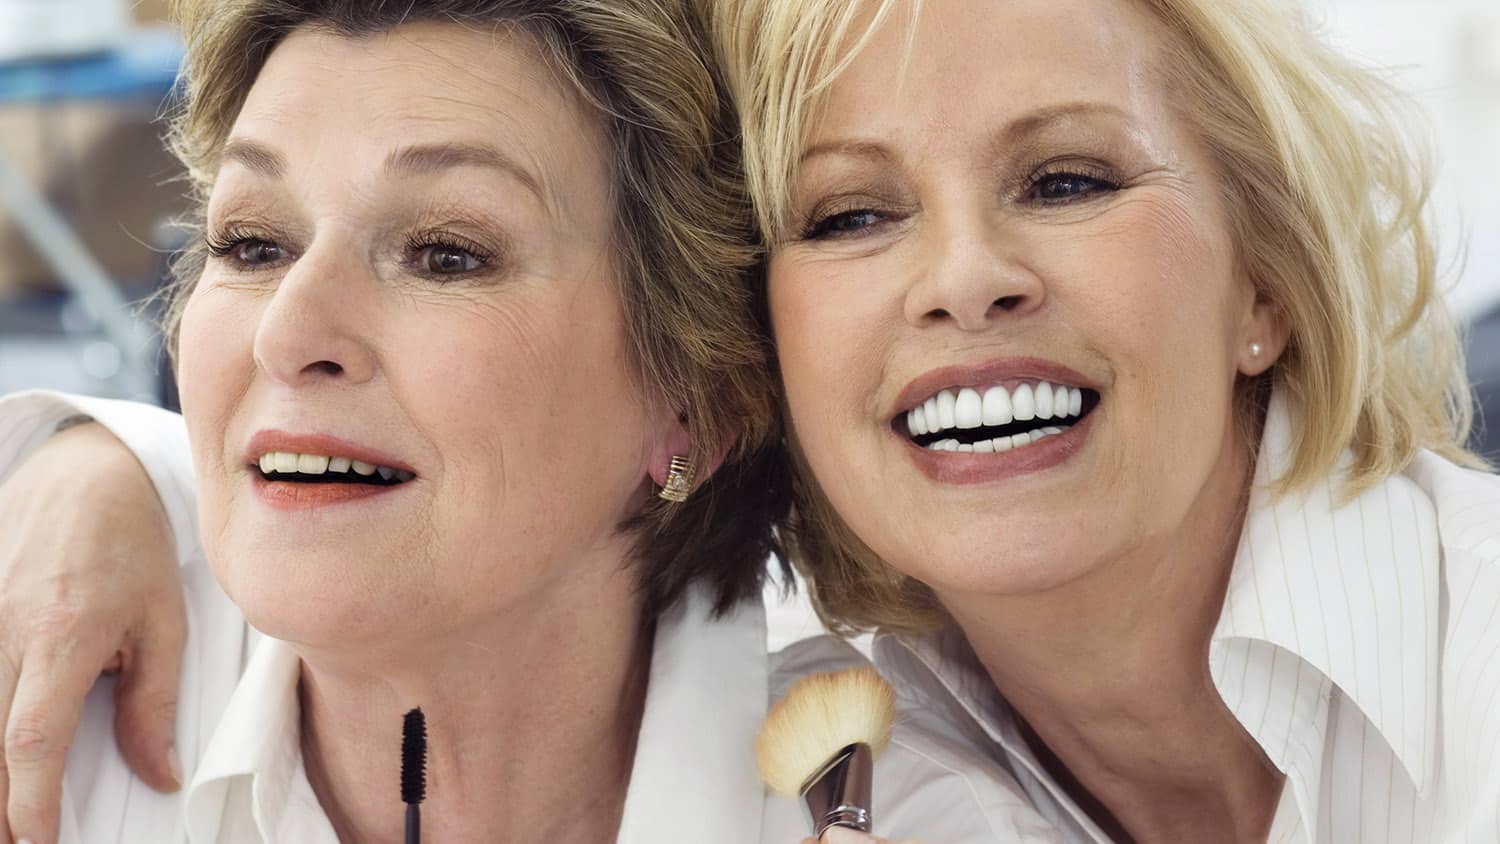 10 Exclusive Makeup Tips for Older Women from a Professional